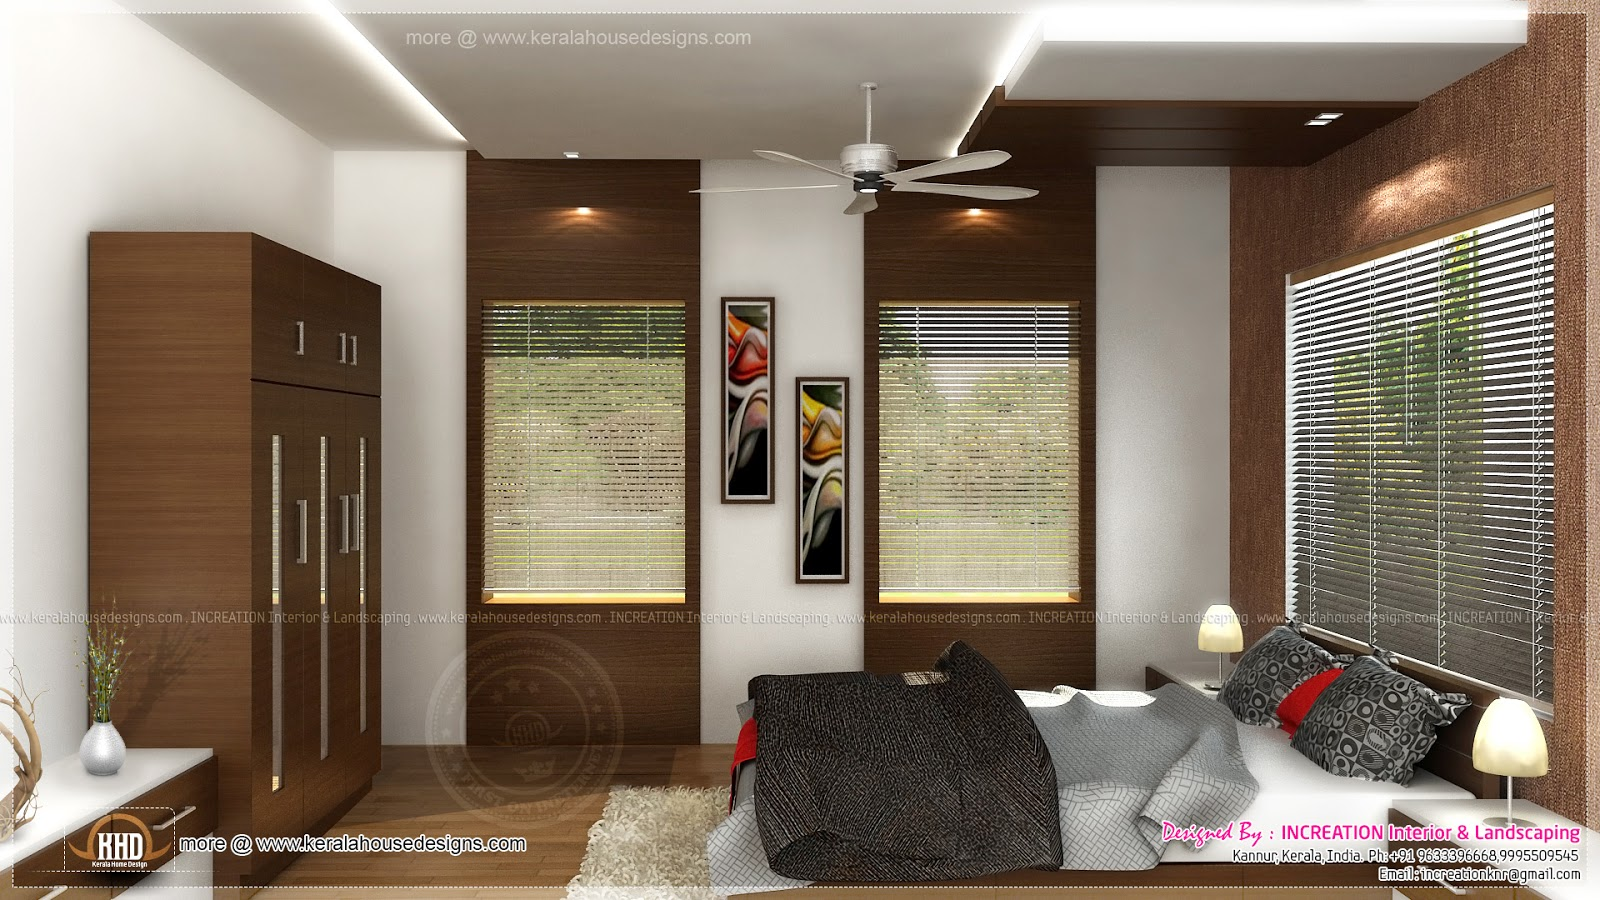 Interior designs from kannur kerala kerala home design for Interior design gallery